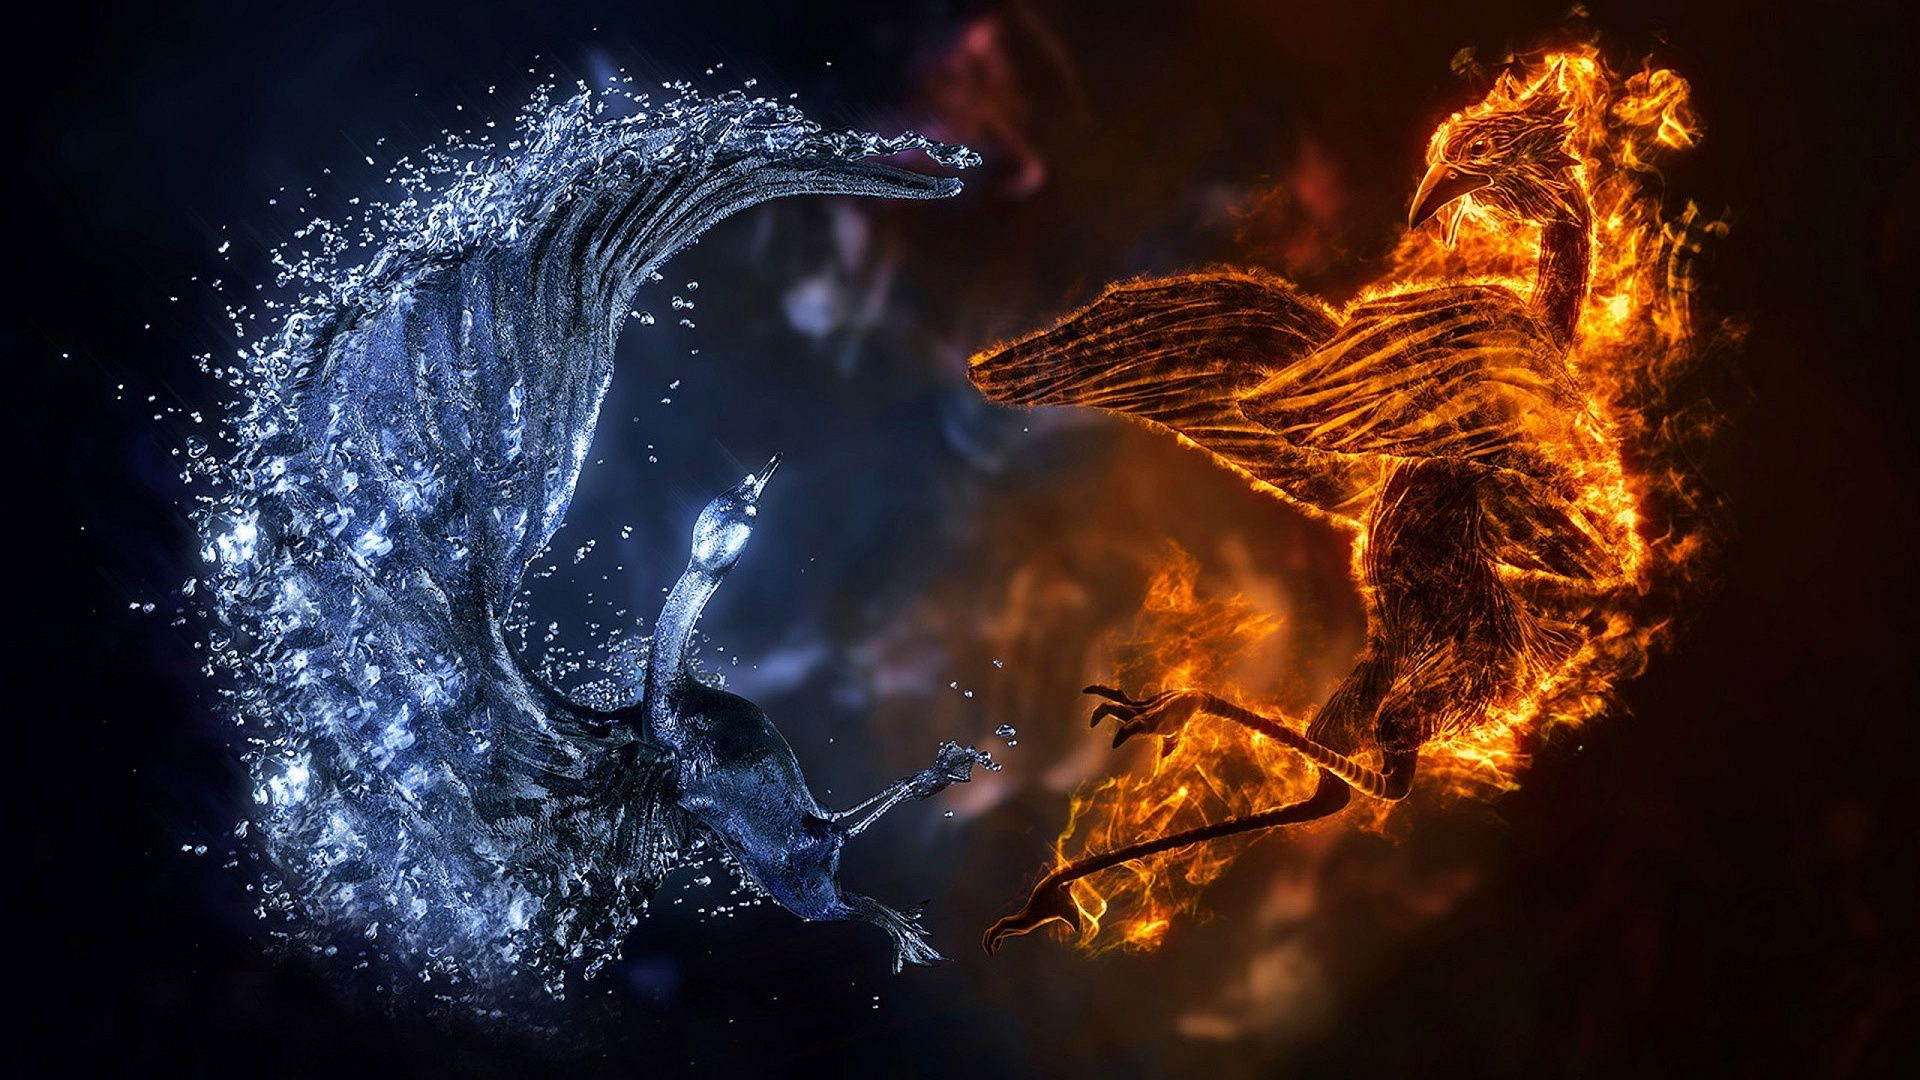 Fire and ice fractal abstract wallpaper hd wallpapers - Description The Wallpaper Above Is Fire Ice Birds Wallpaper In